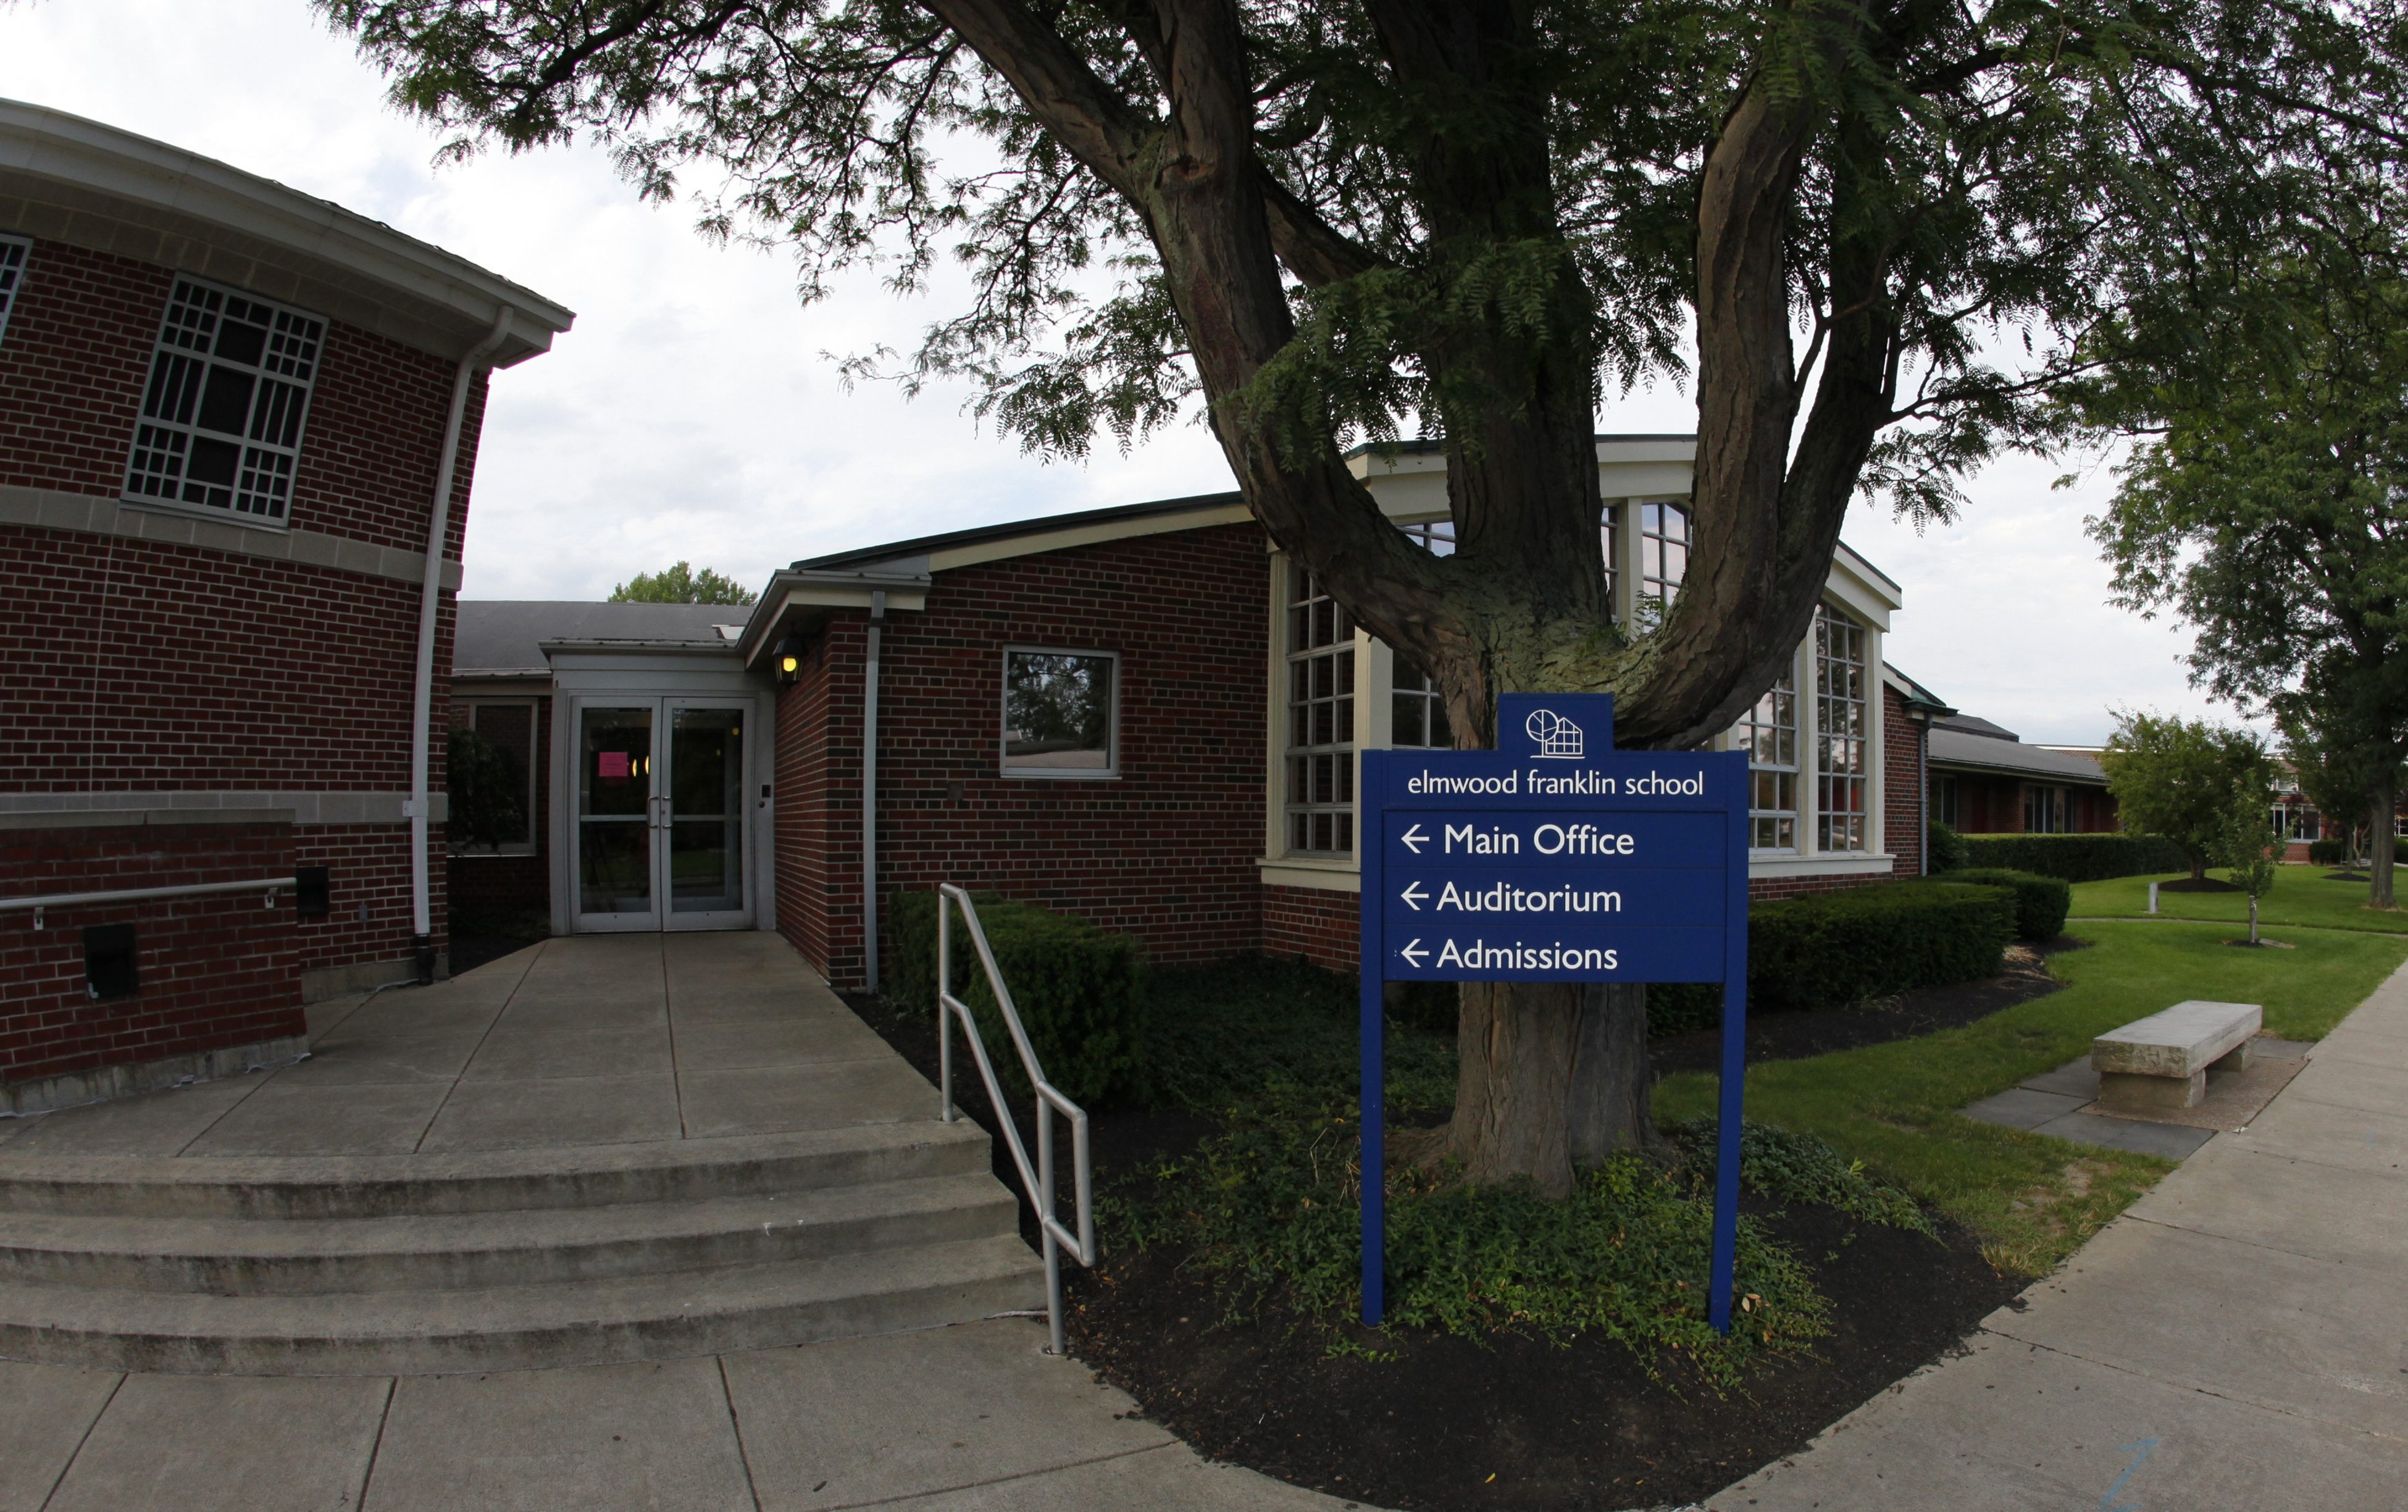 An exterior view of the Elmwood Franklin School.